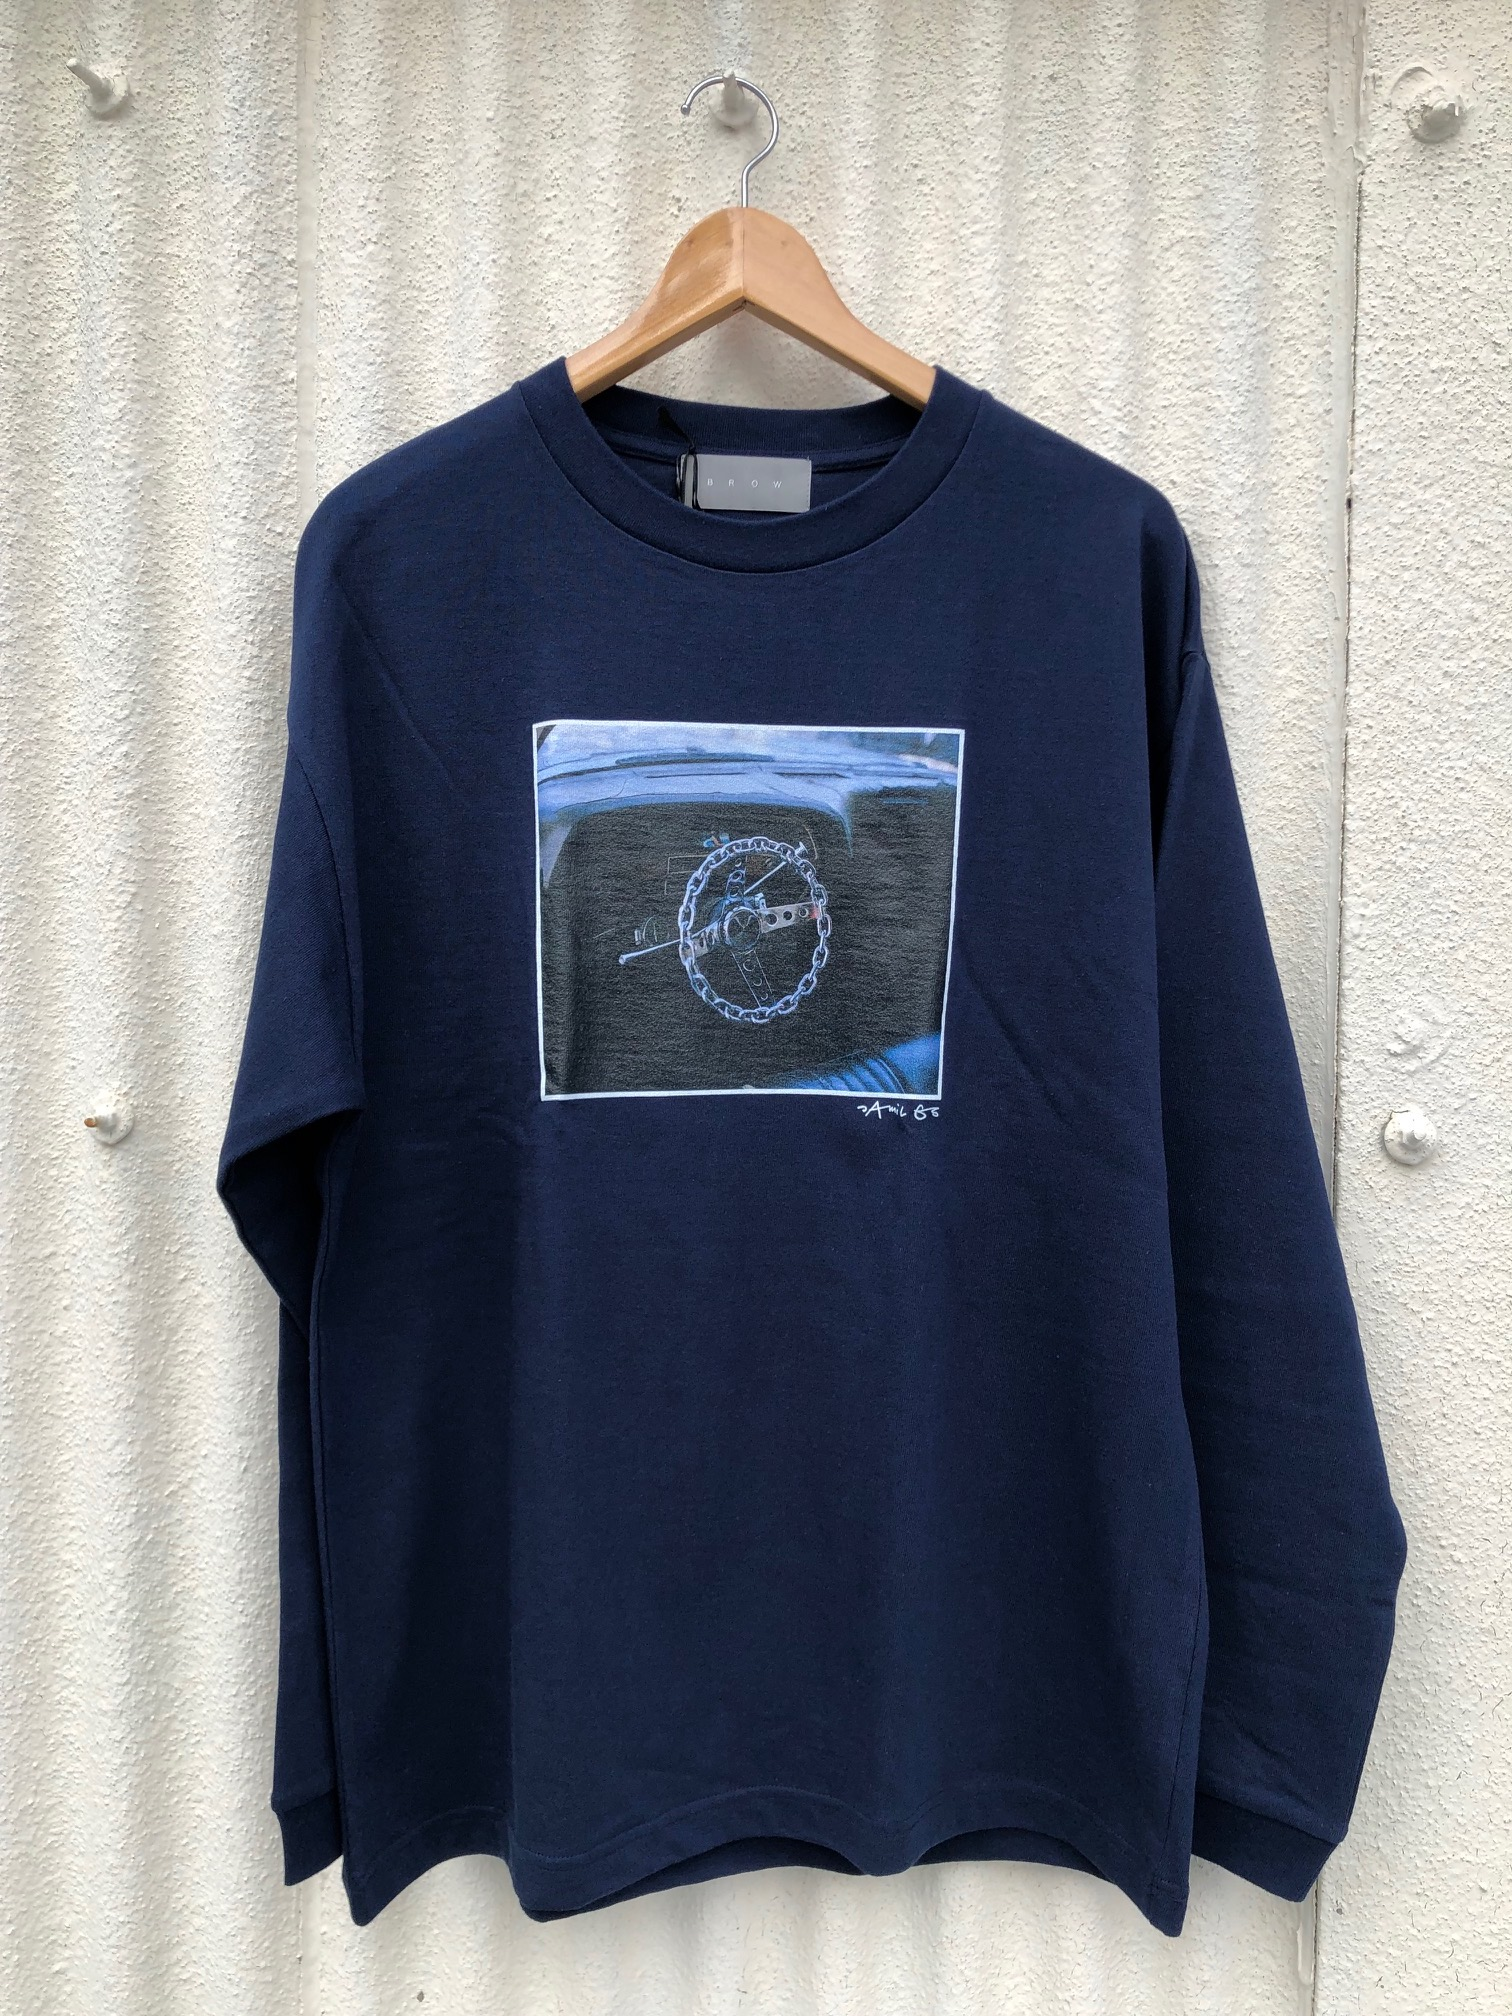 BROW ブロウ L/S TEE メンズフォトプリントロンT NAVY 紺 LA LAZA 長袖 Jamil GS 両面プリント COTTON 綿